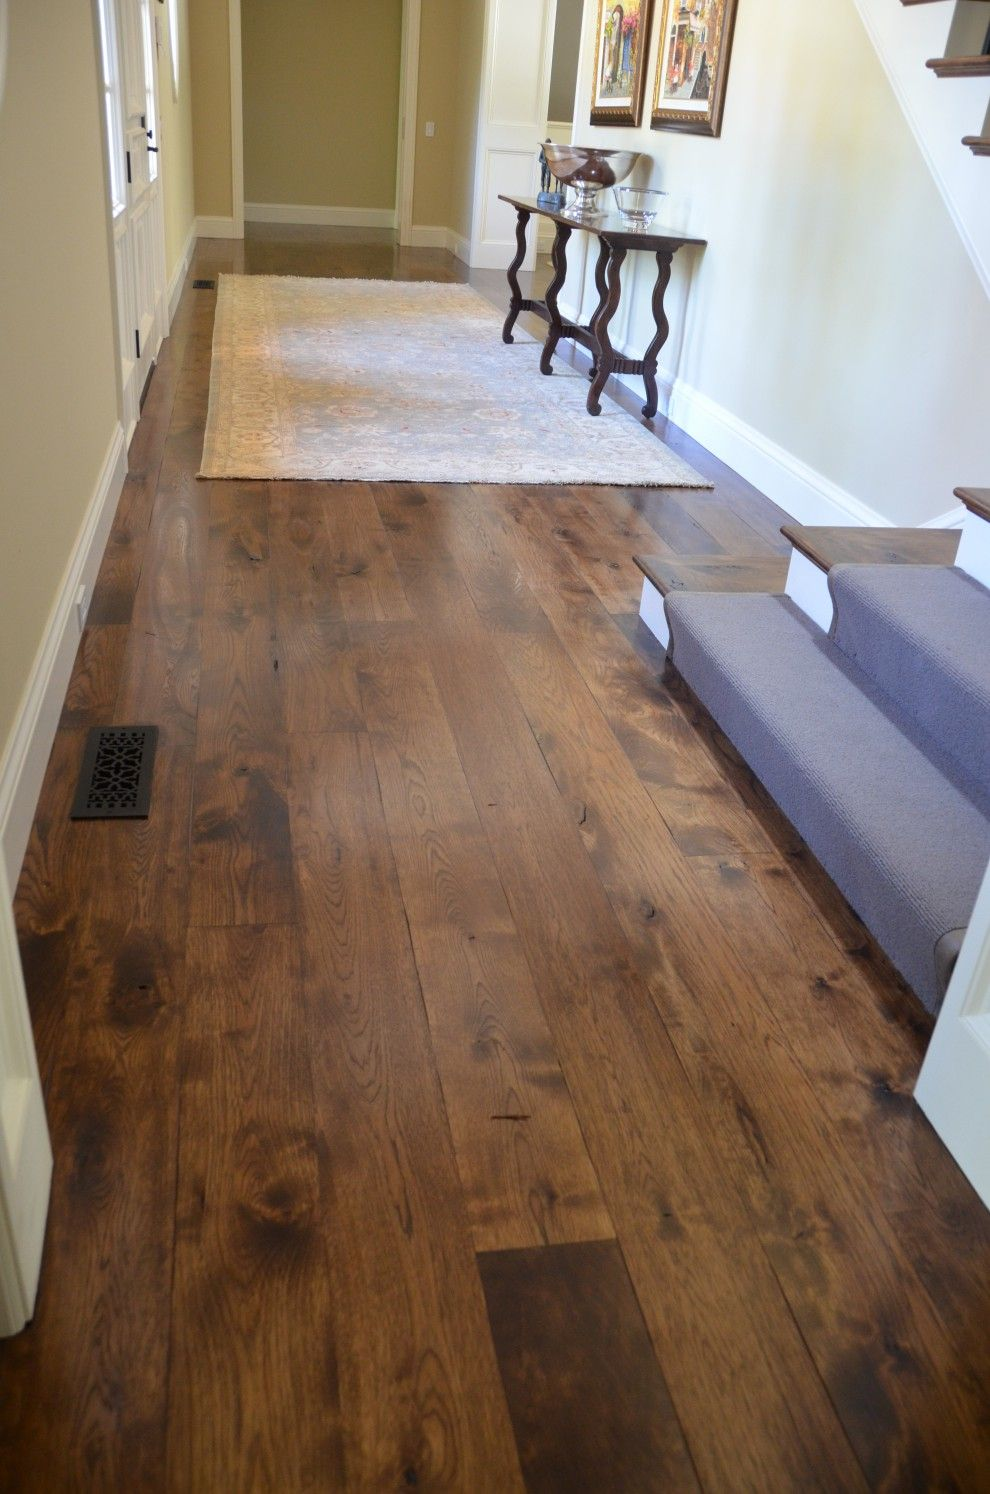 2074 Hickory Too Blotchy Wide Plank Flooring Hardwood Floors Solid Hardwood Floors